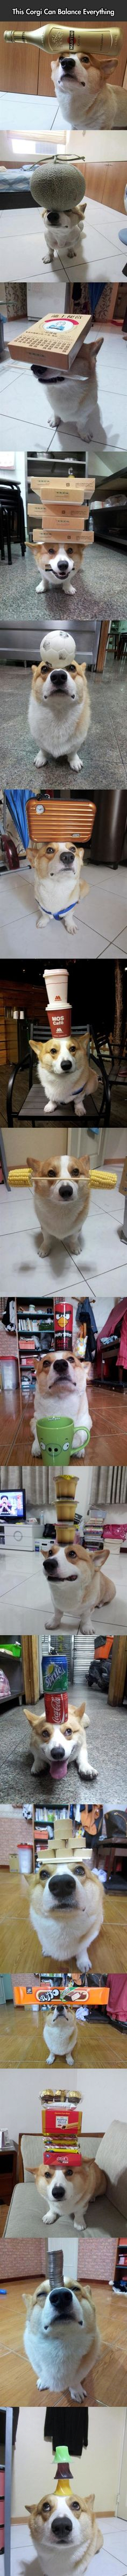 As if we needed yet another reason why Corgis are awesome.